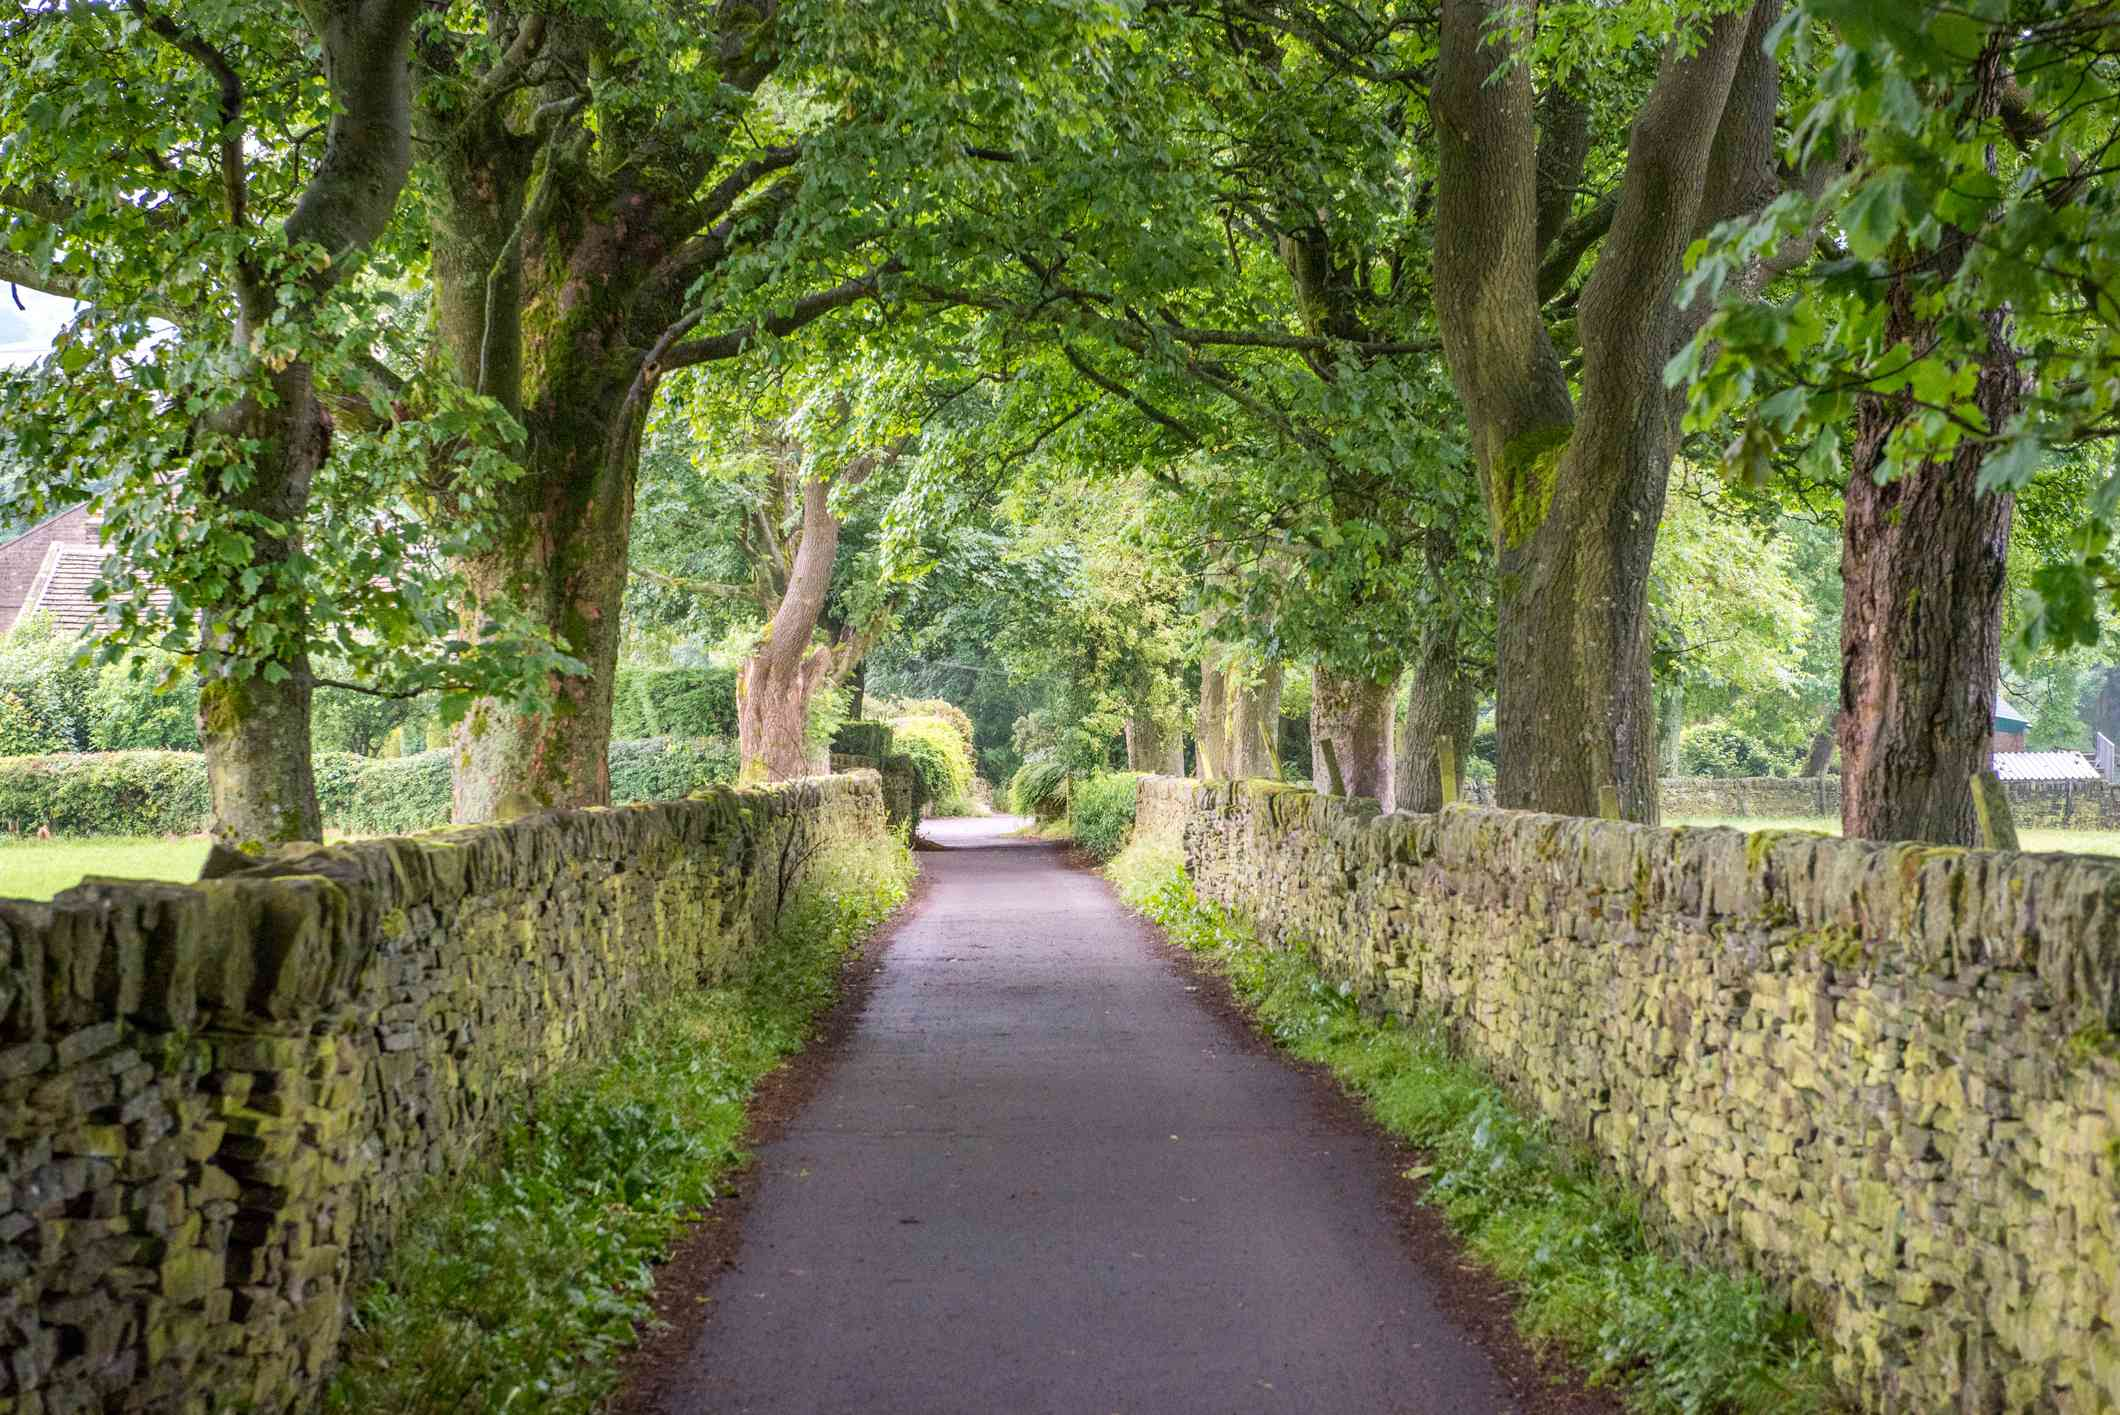 Sidewalk lined by stone wall and trees in Haworth, West Yorkshire, England